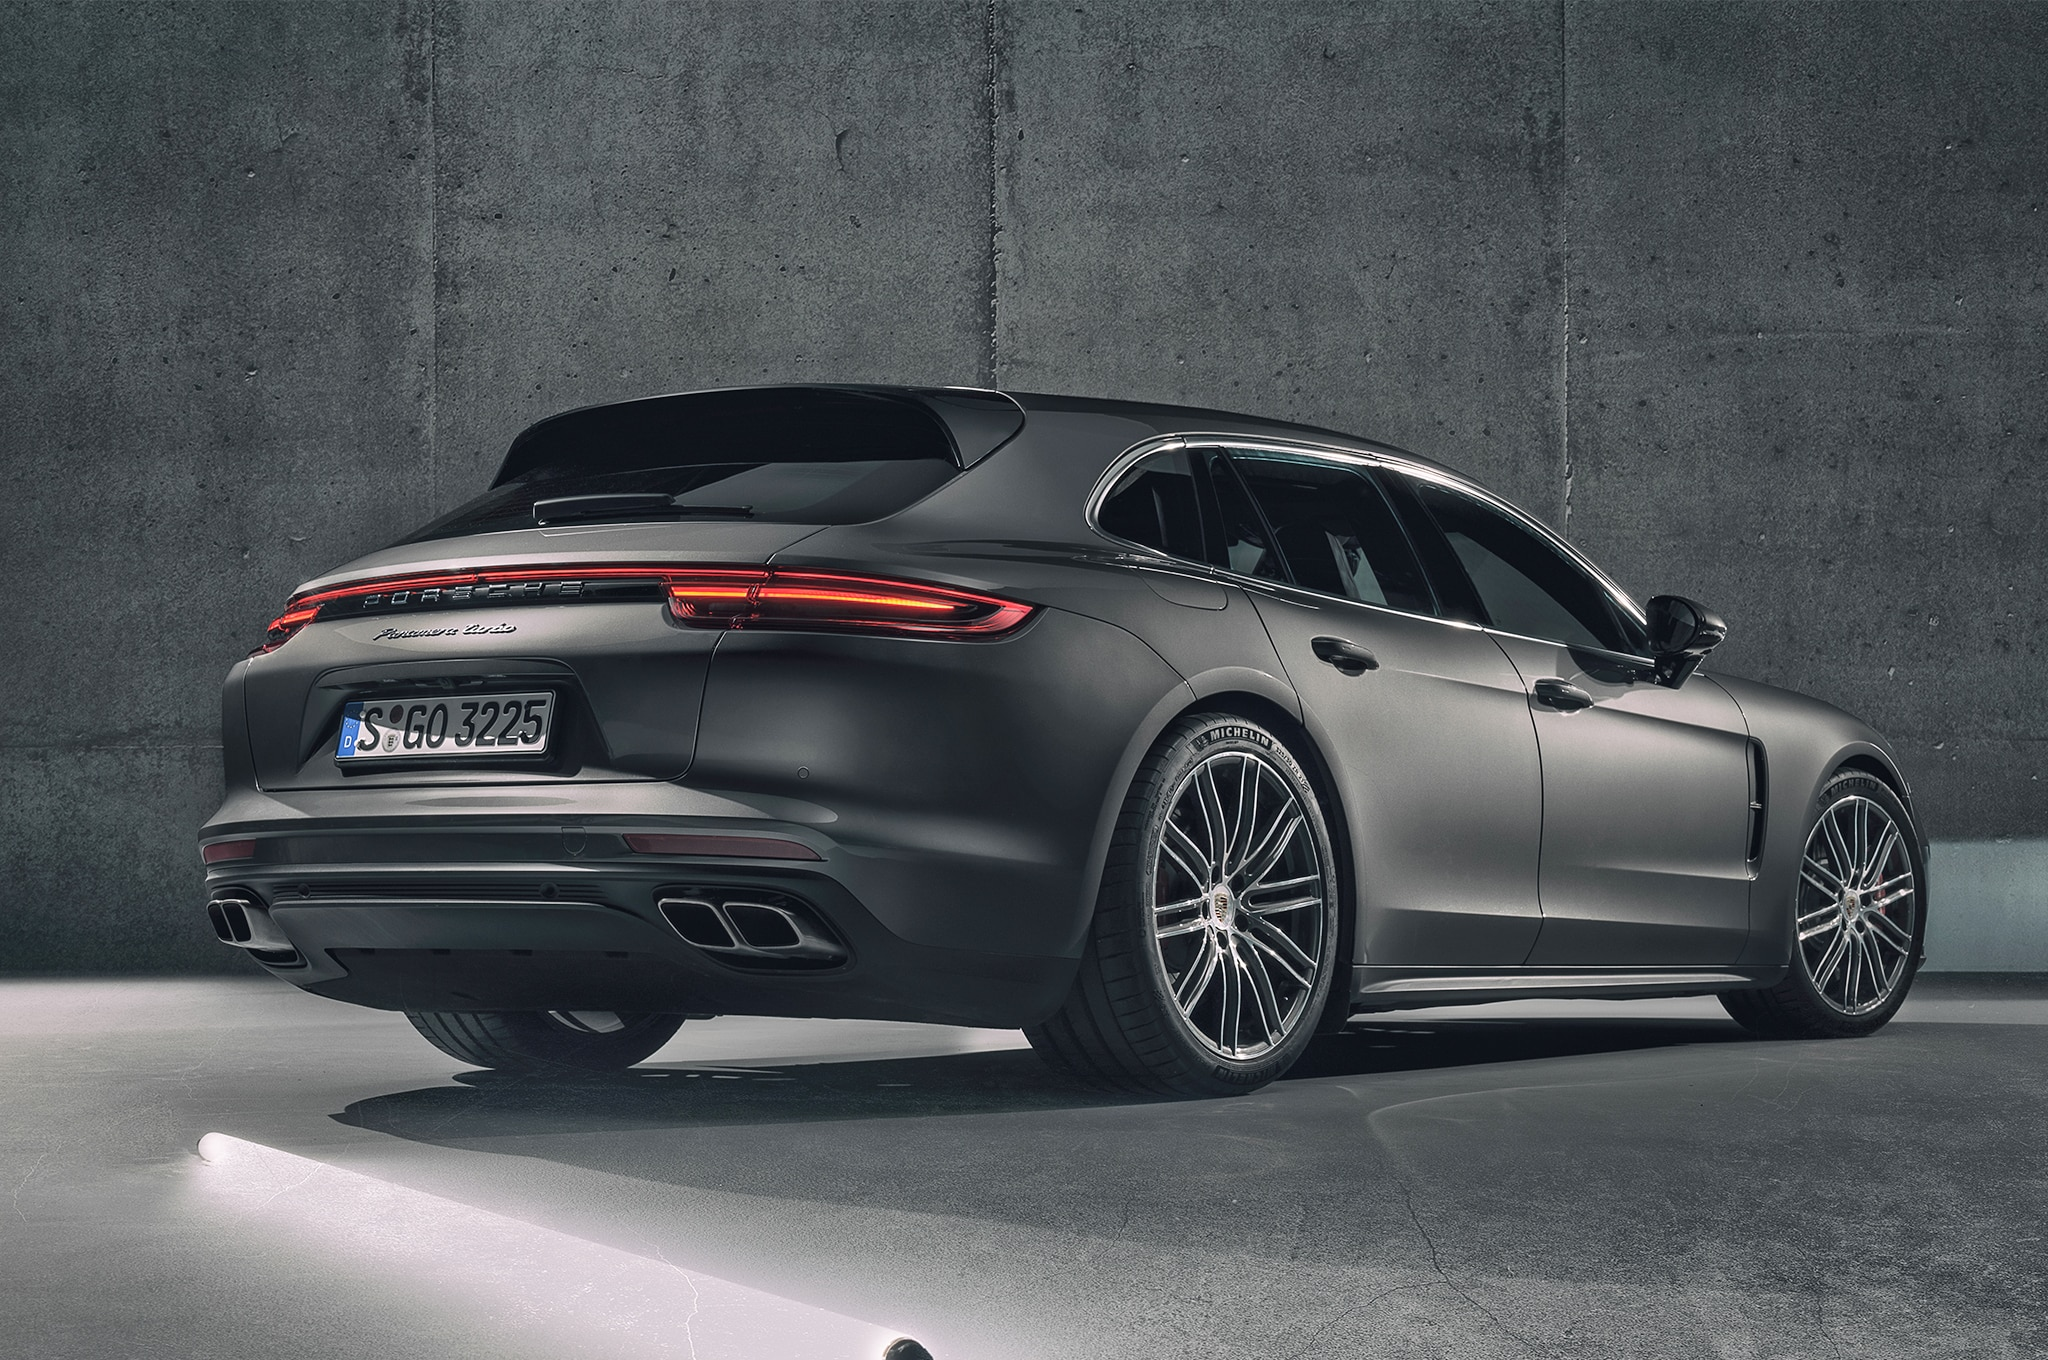 2018 Porsche Panamera Sport Turismo Rear Three Quarter